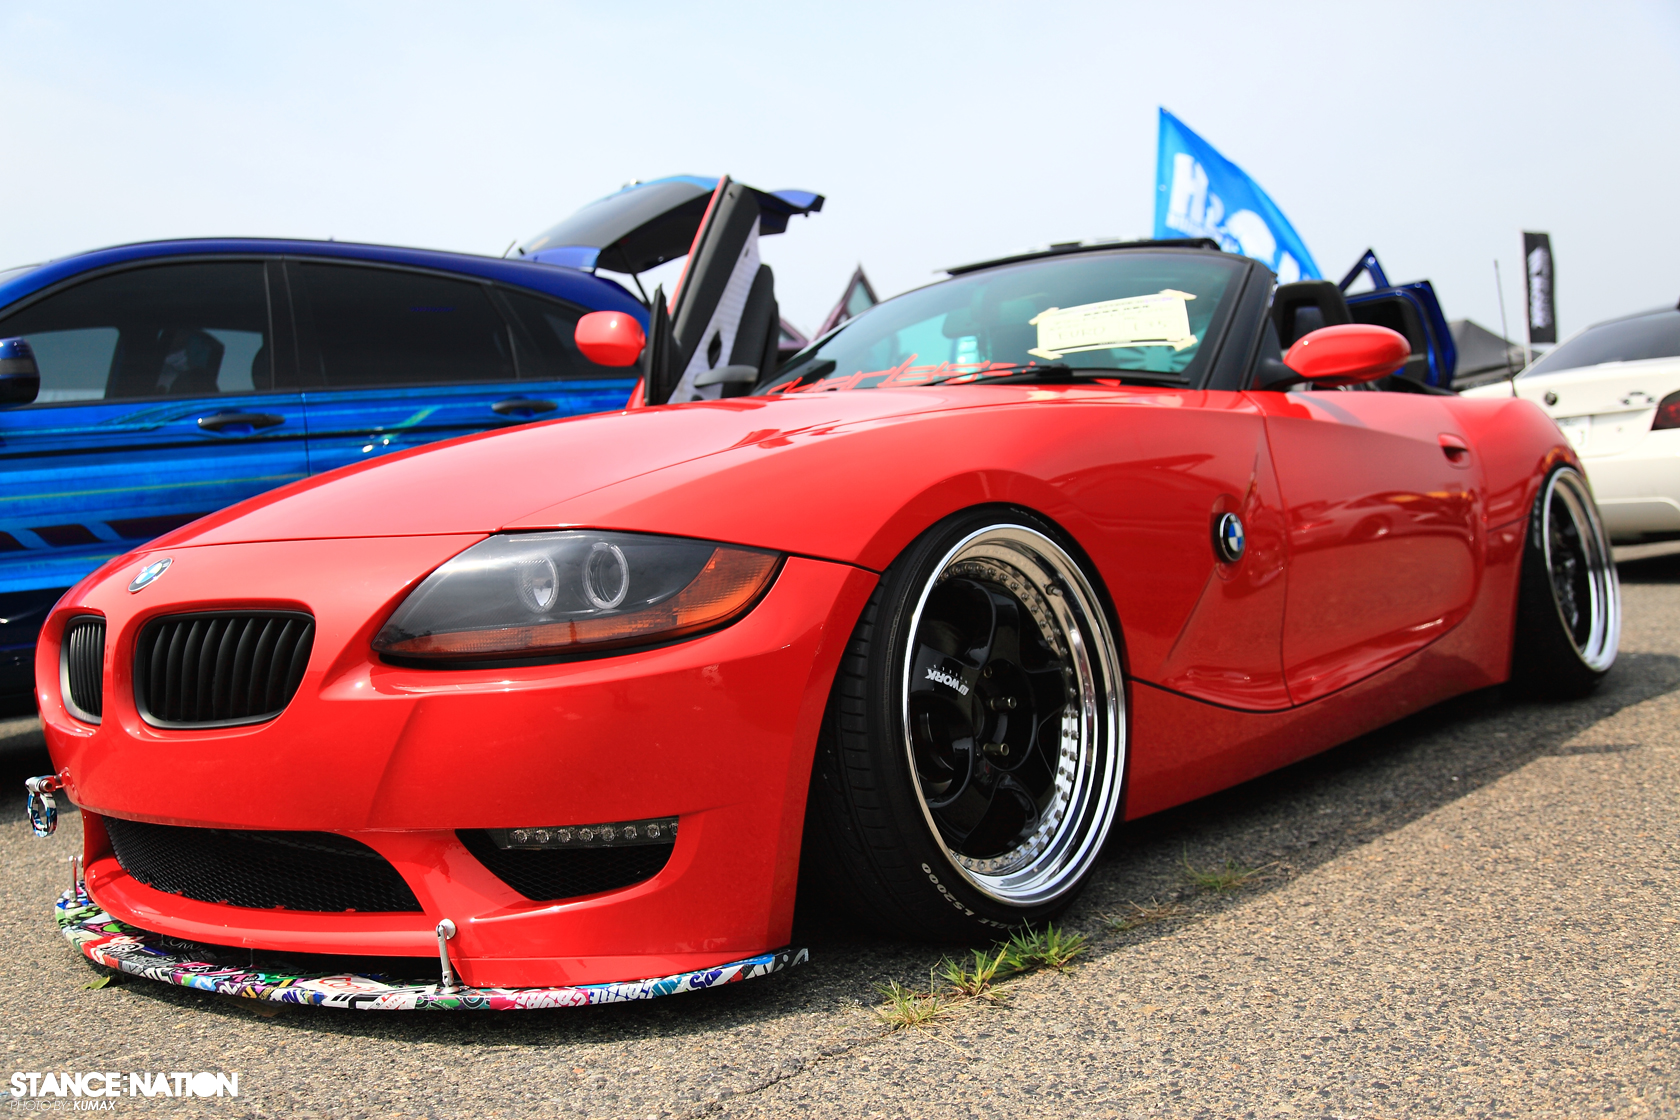 Euro Japan Usa Stancenation Form Gt Function